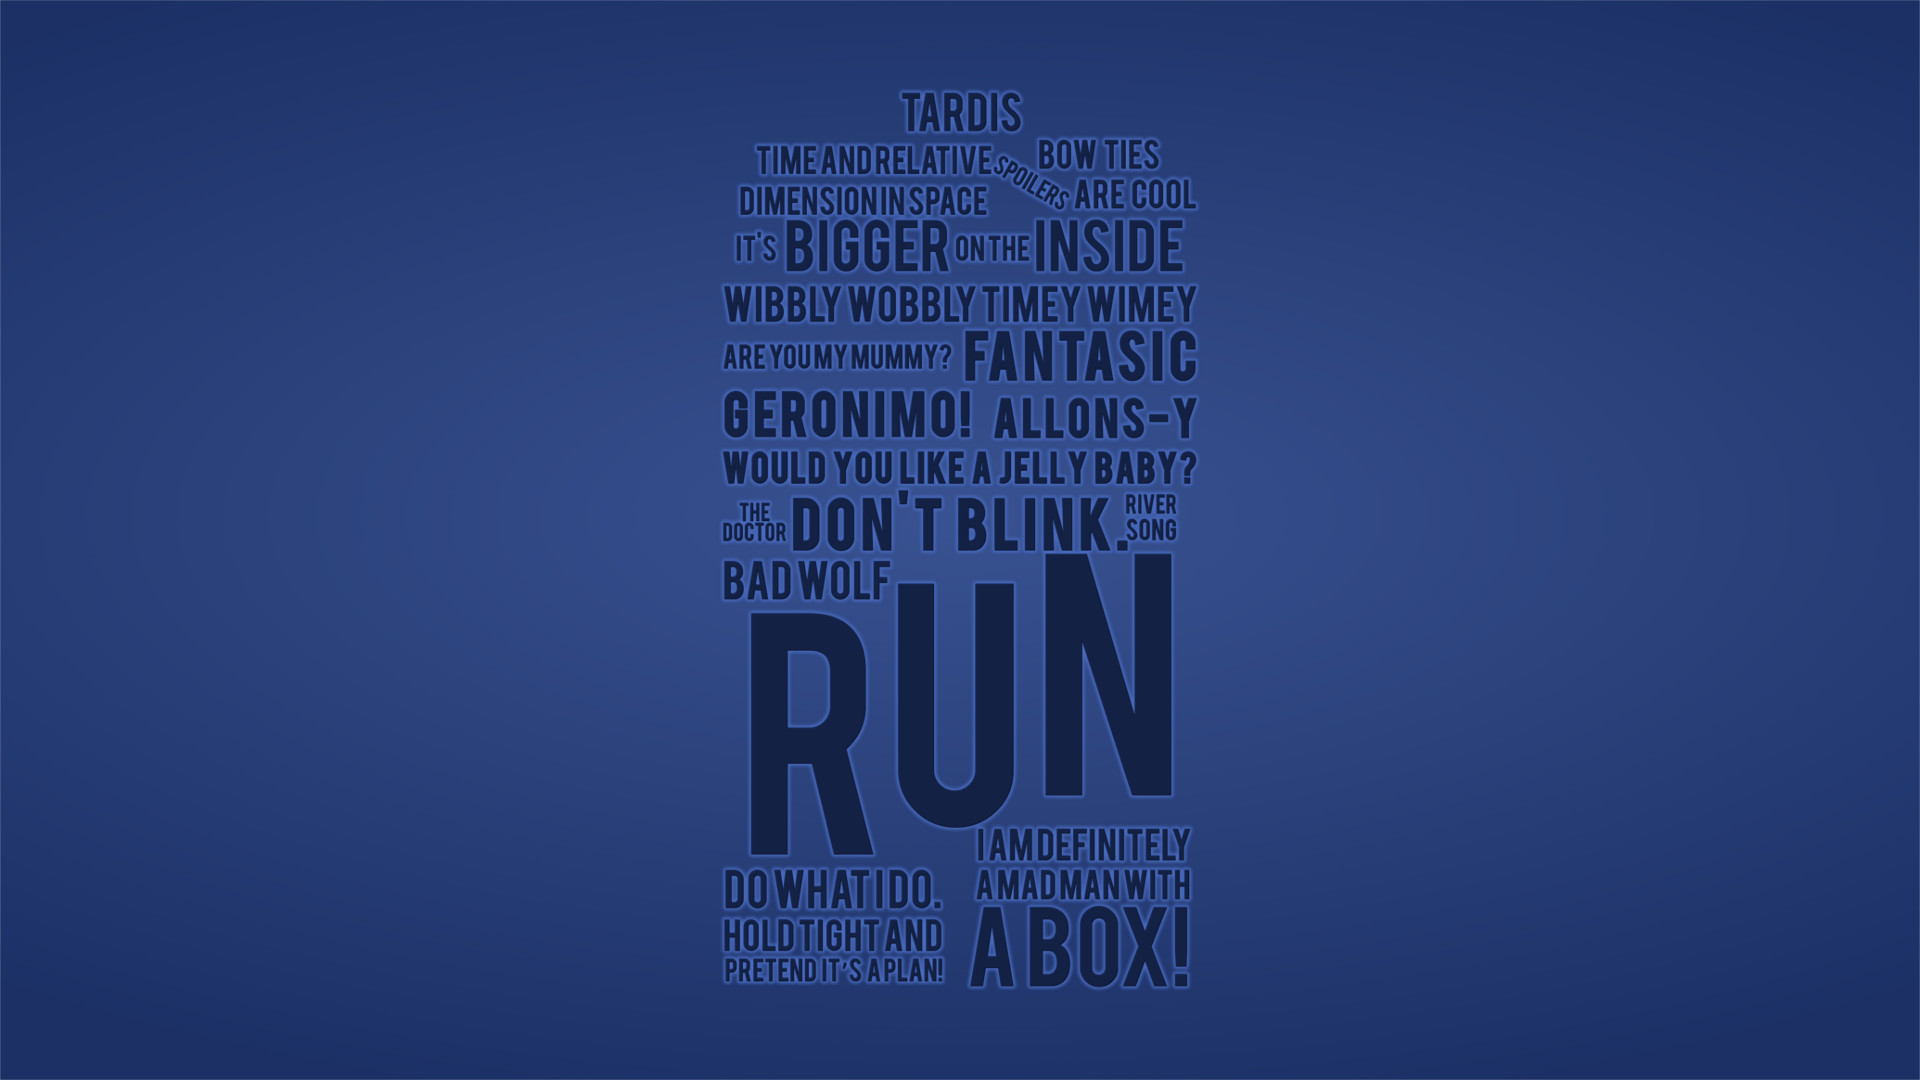 Doctor Who Quotes About Time Tardis – doctor who quotes by